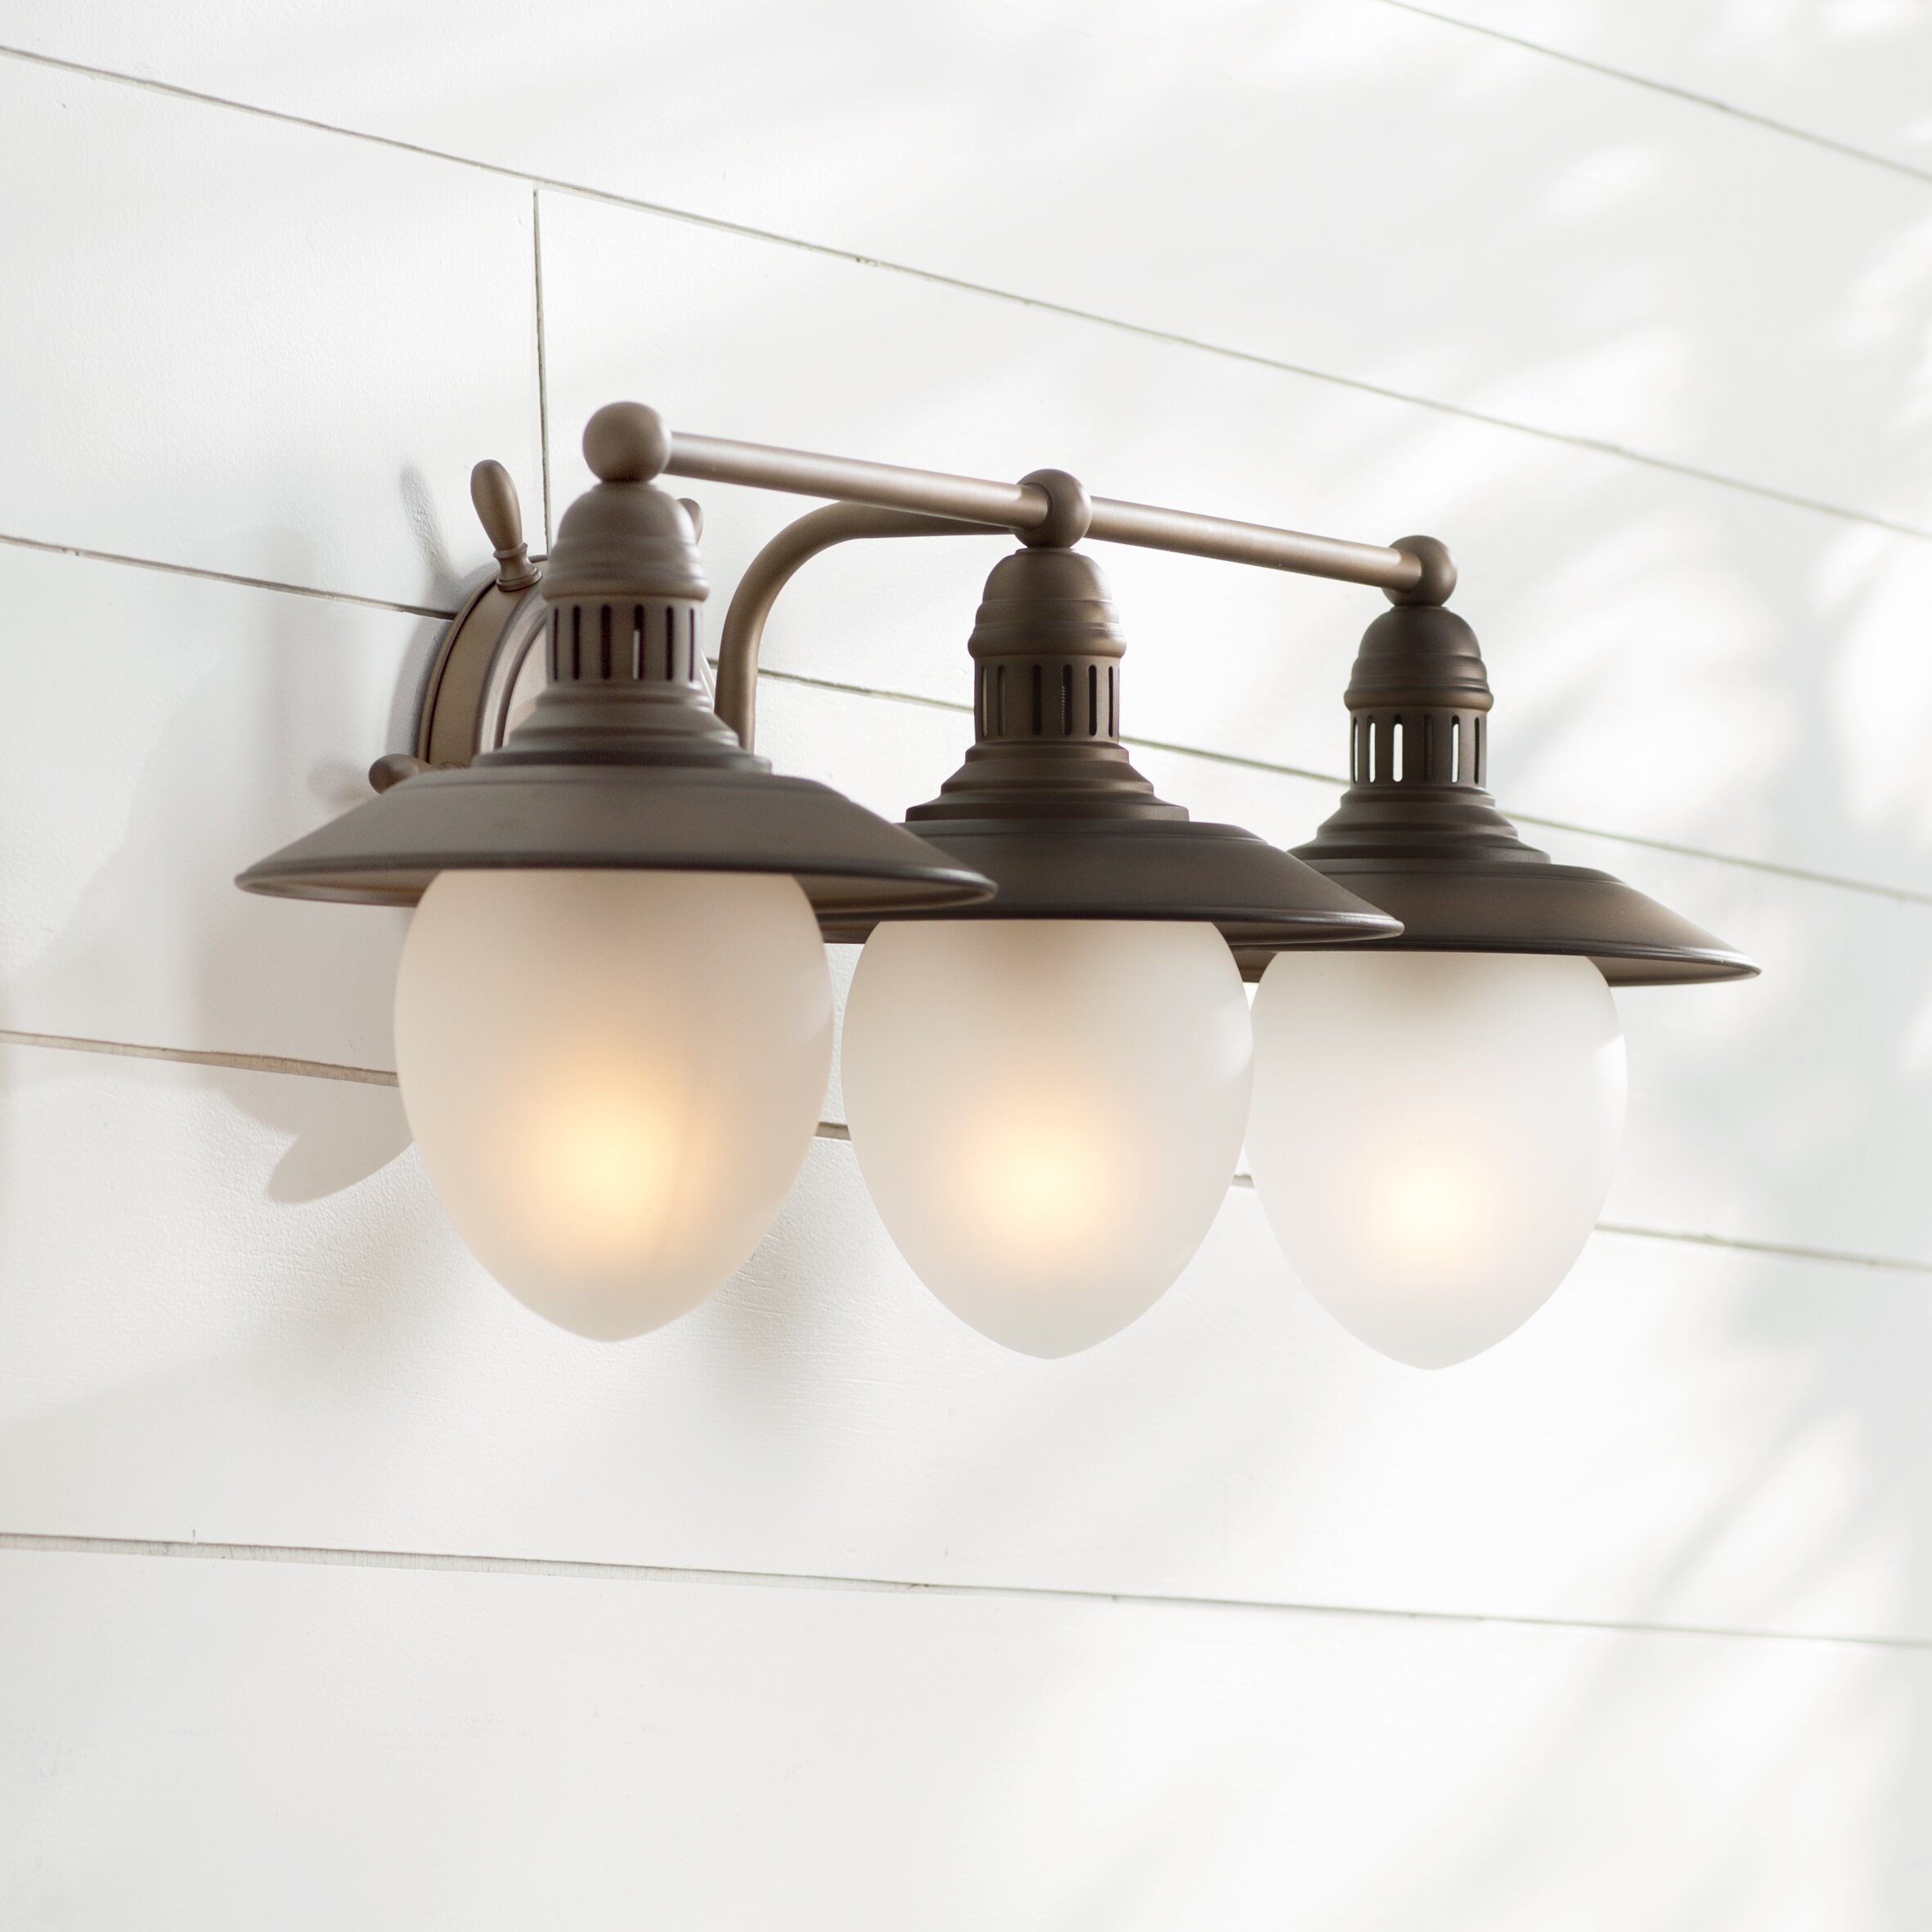 Nautical Bathroom Vanity Lights: Vaxcel Nautical 3 Light Vanity Light & Reviews